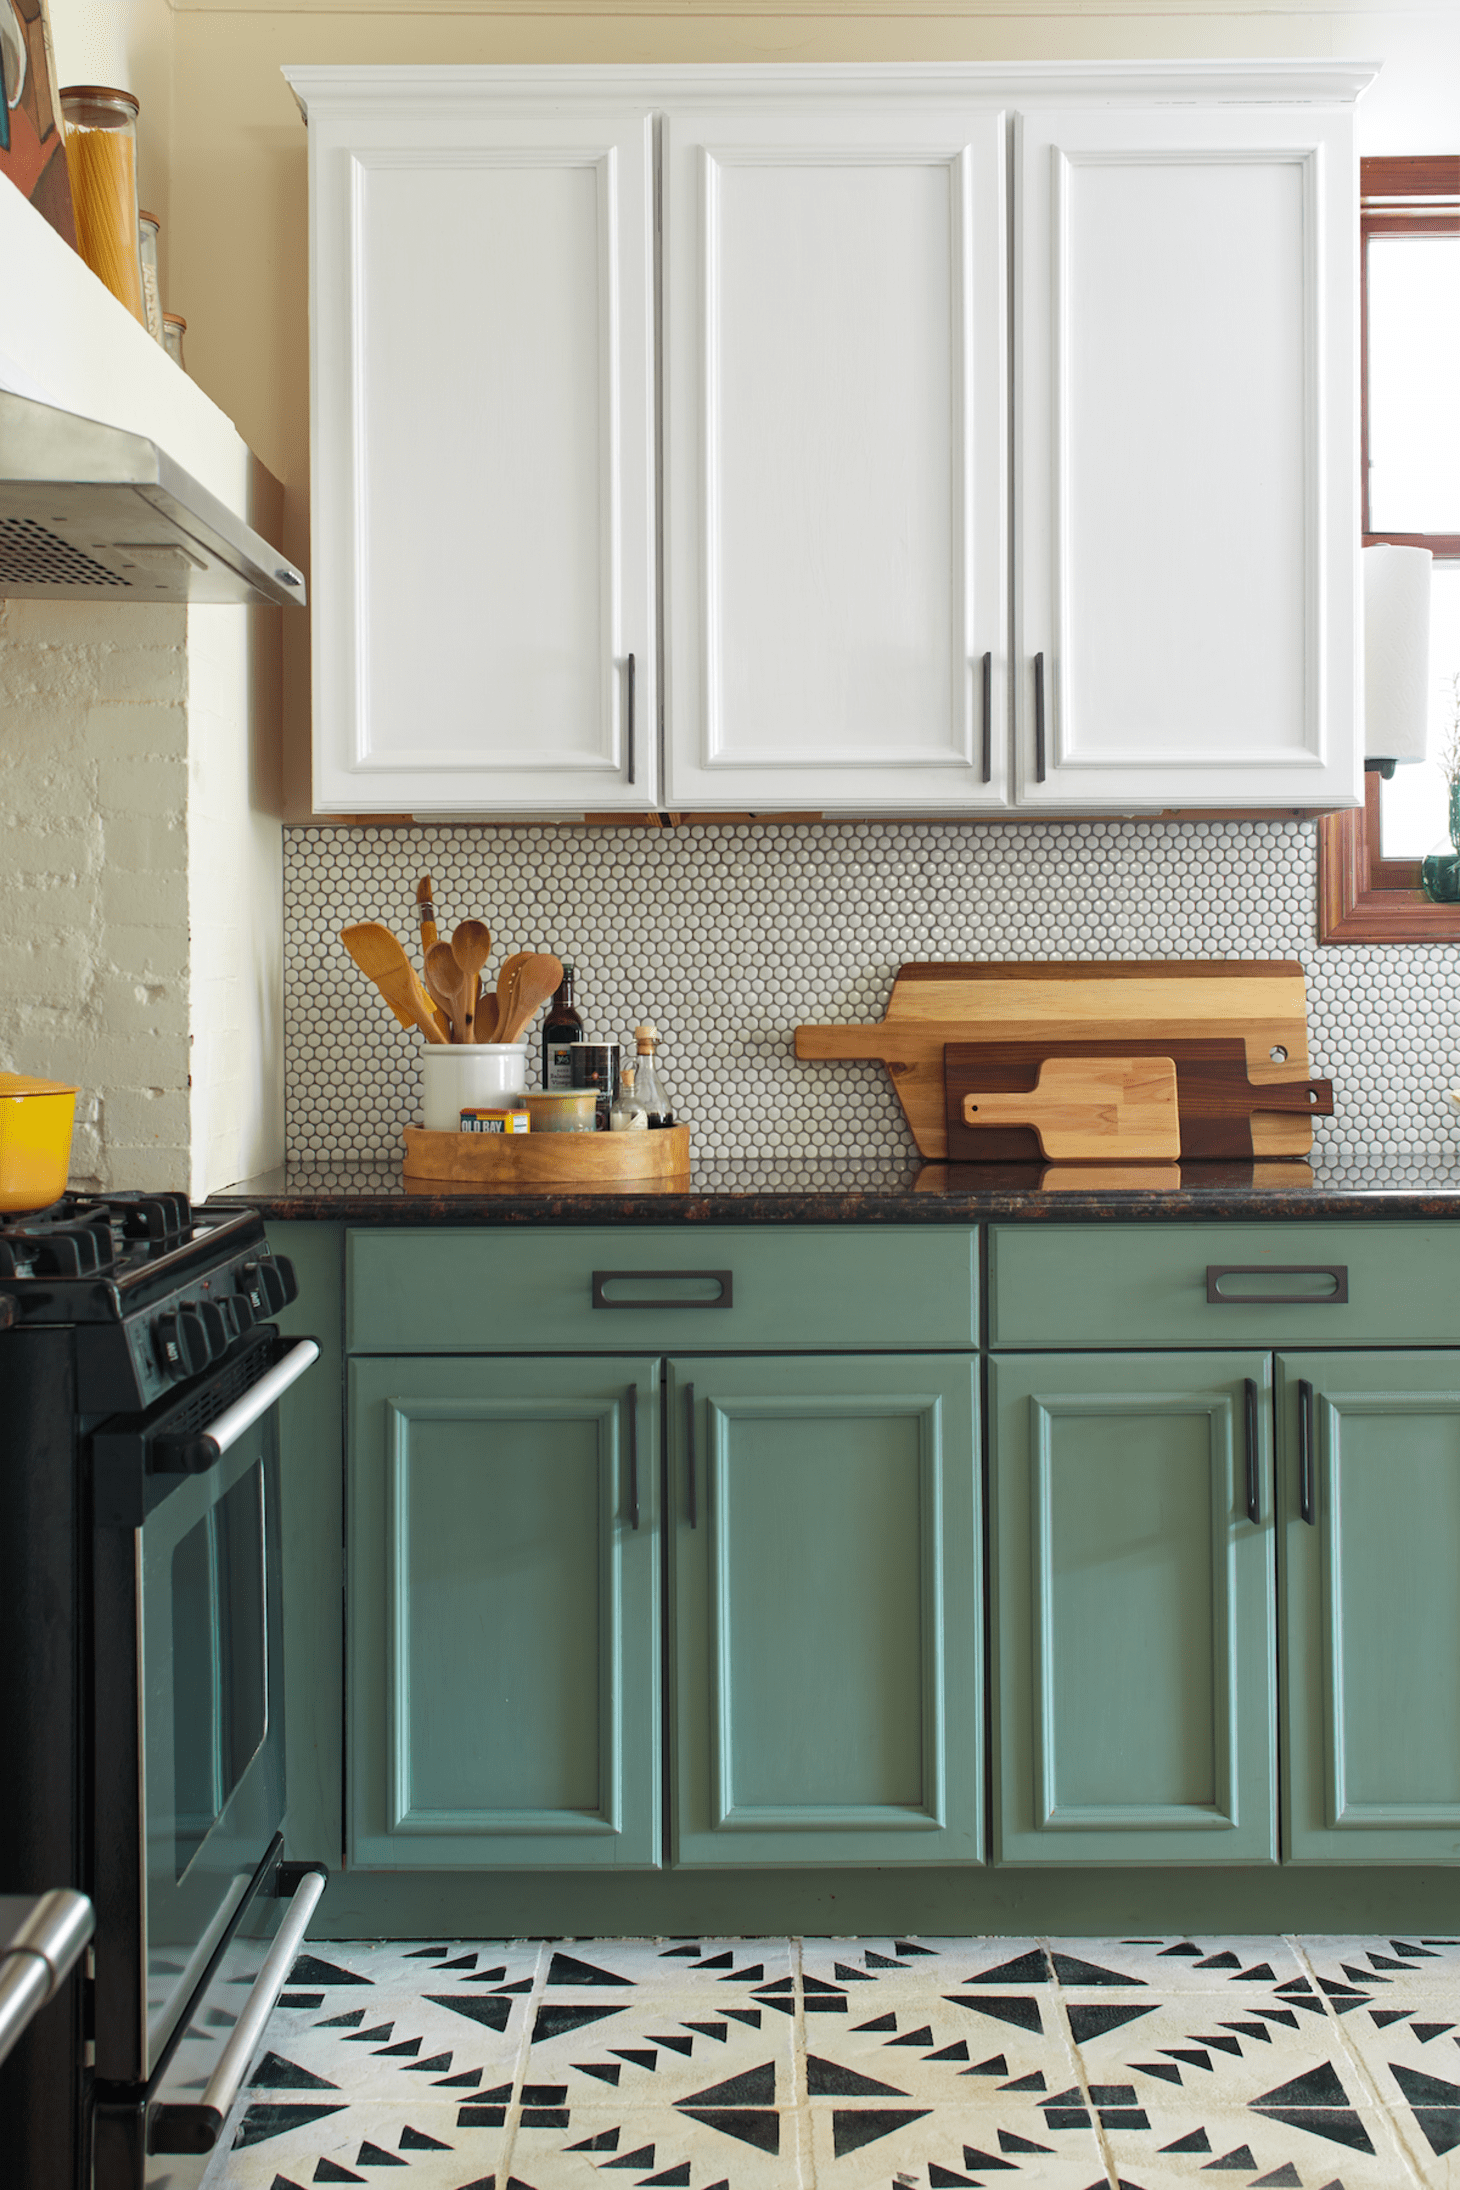 8ee01cf5e02df3a983ee38b2a788d13638275aec Painted Chalkboard Kitchen Ideas on orange painted kitchen, red painted kitchen, chalk painted kitchen, diy painted kitchen, wood painted kitchen, white painted kitchen, black painted kitchen, blue painted kitchen, chalkboard paint for furniture, brown painted kitchen, antique painted kitchen, glass painted kitchen,